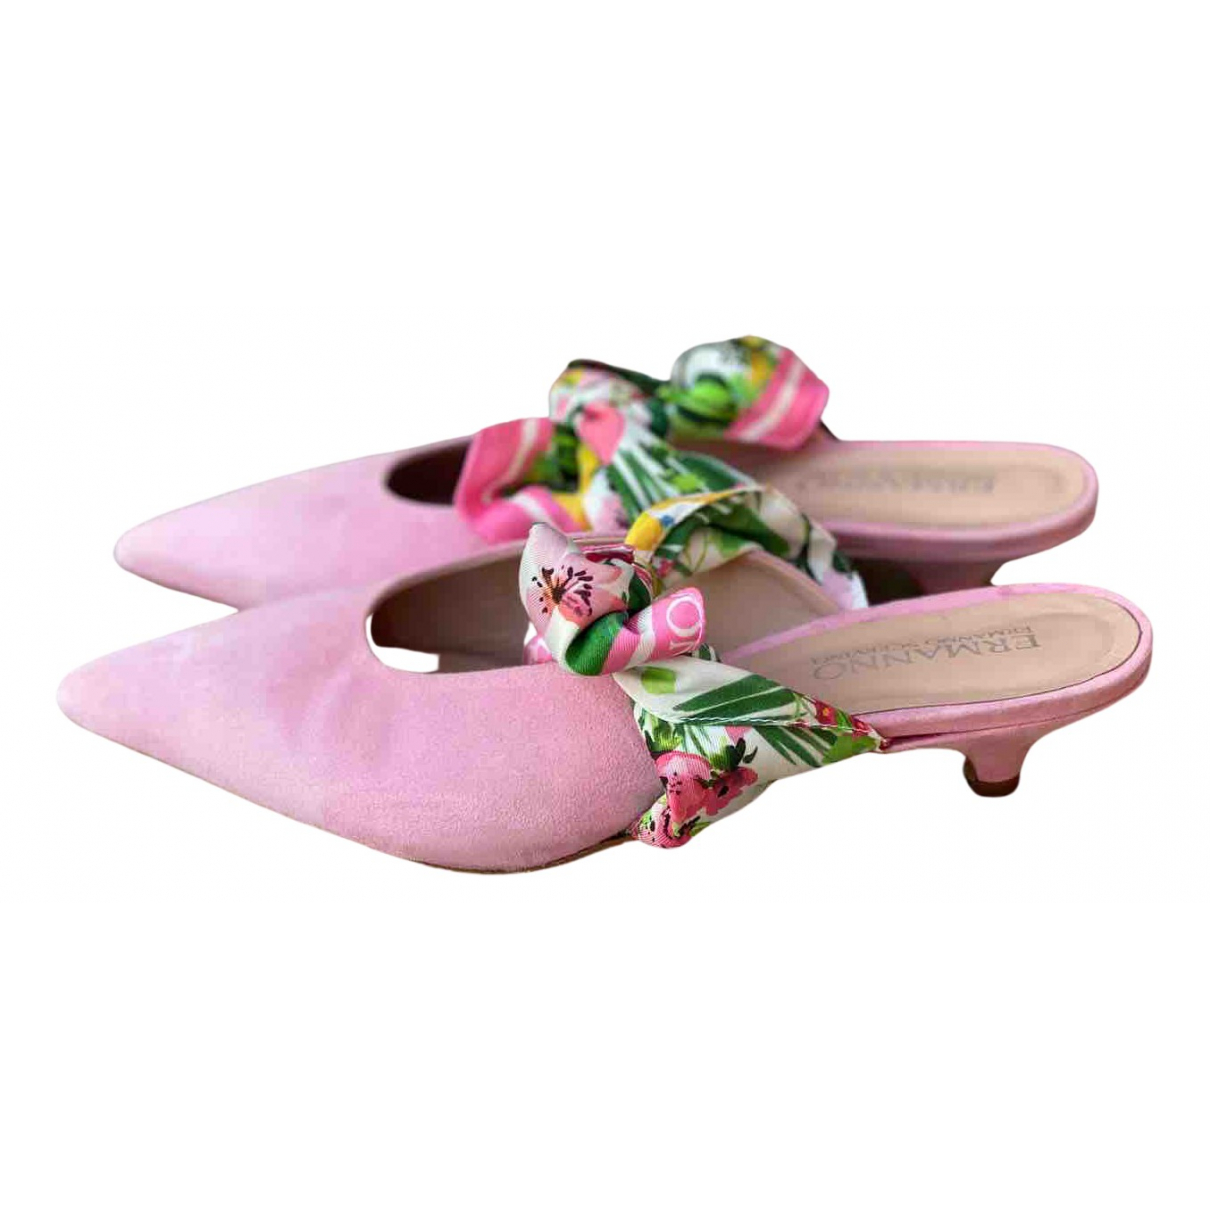 Ermanno Scervino N Pink Suede Mules & Clogs for Women 38 EU